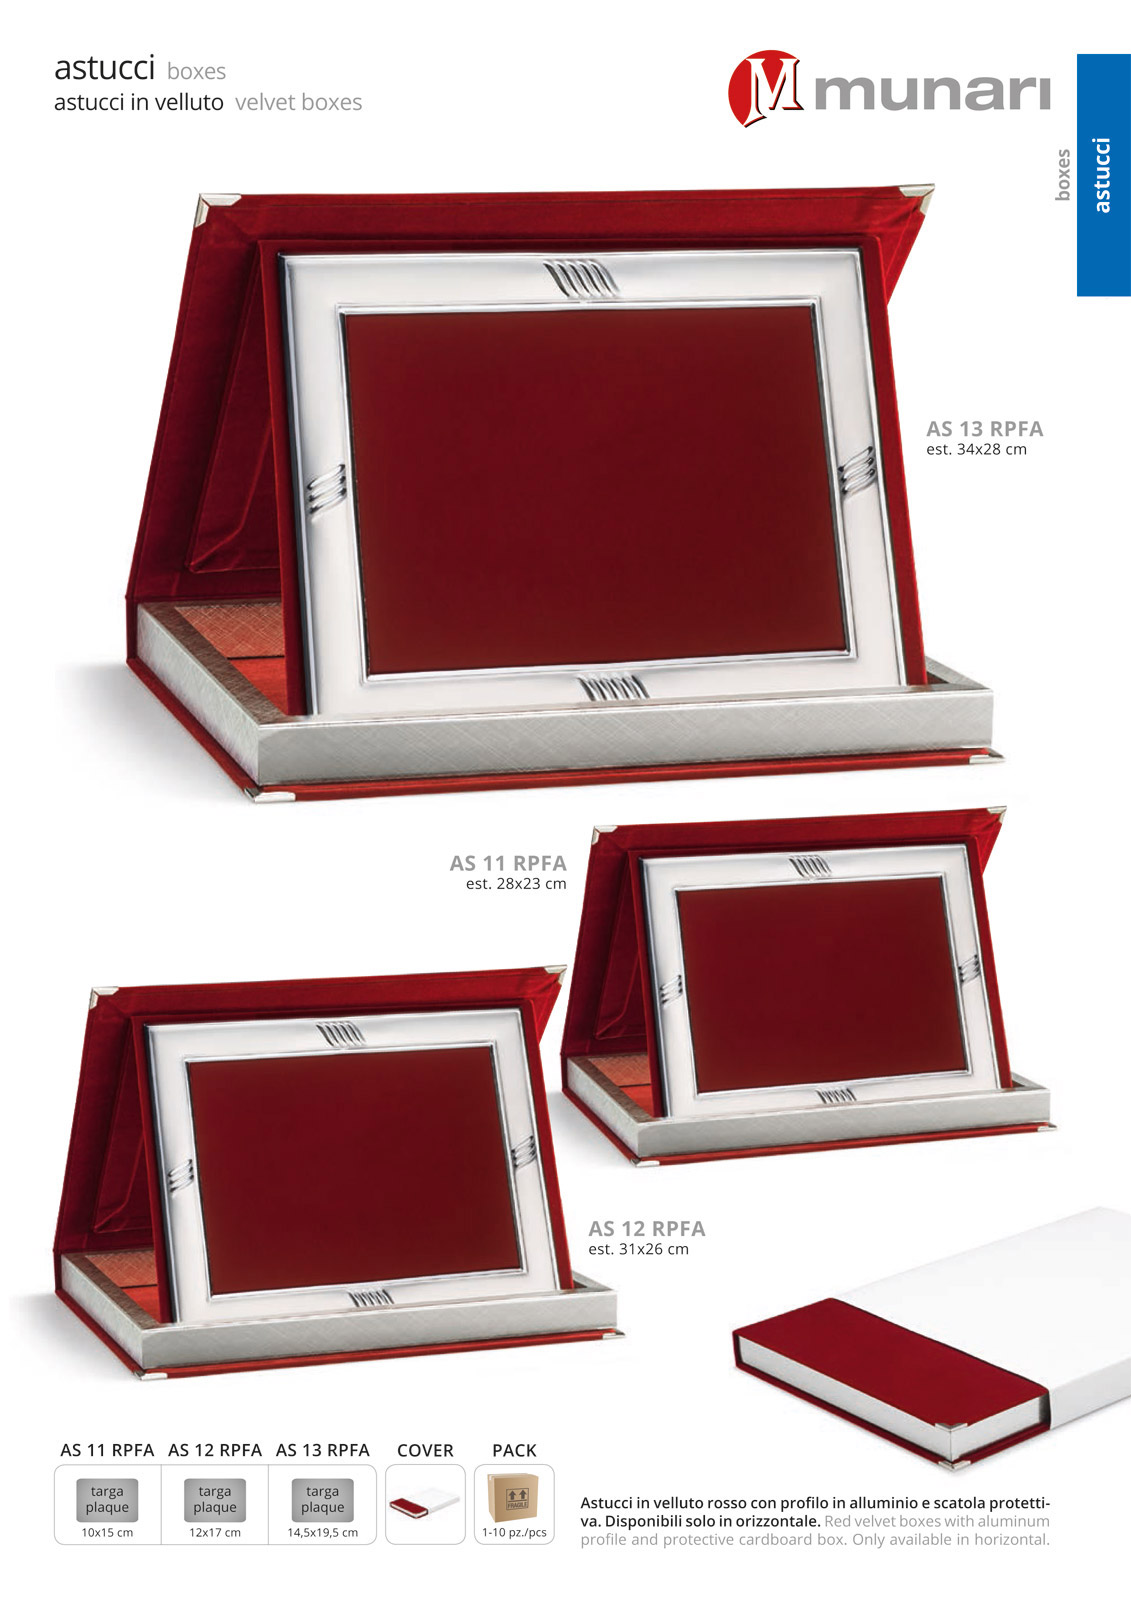 Red velvet boxes series AS 10R PFA with aluminum profile